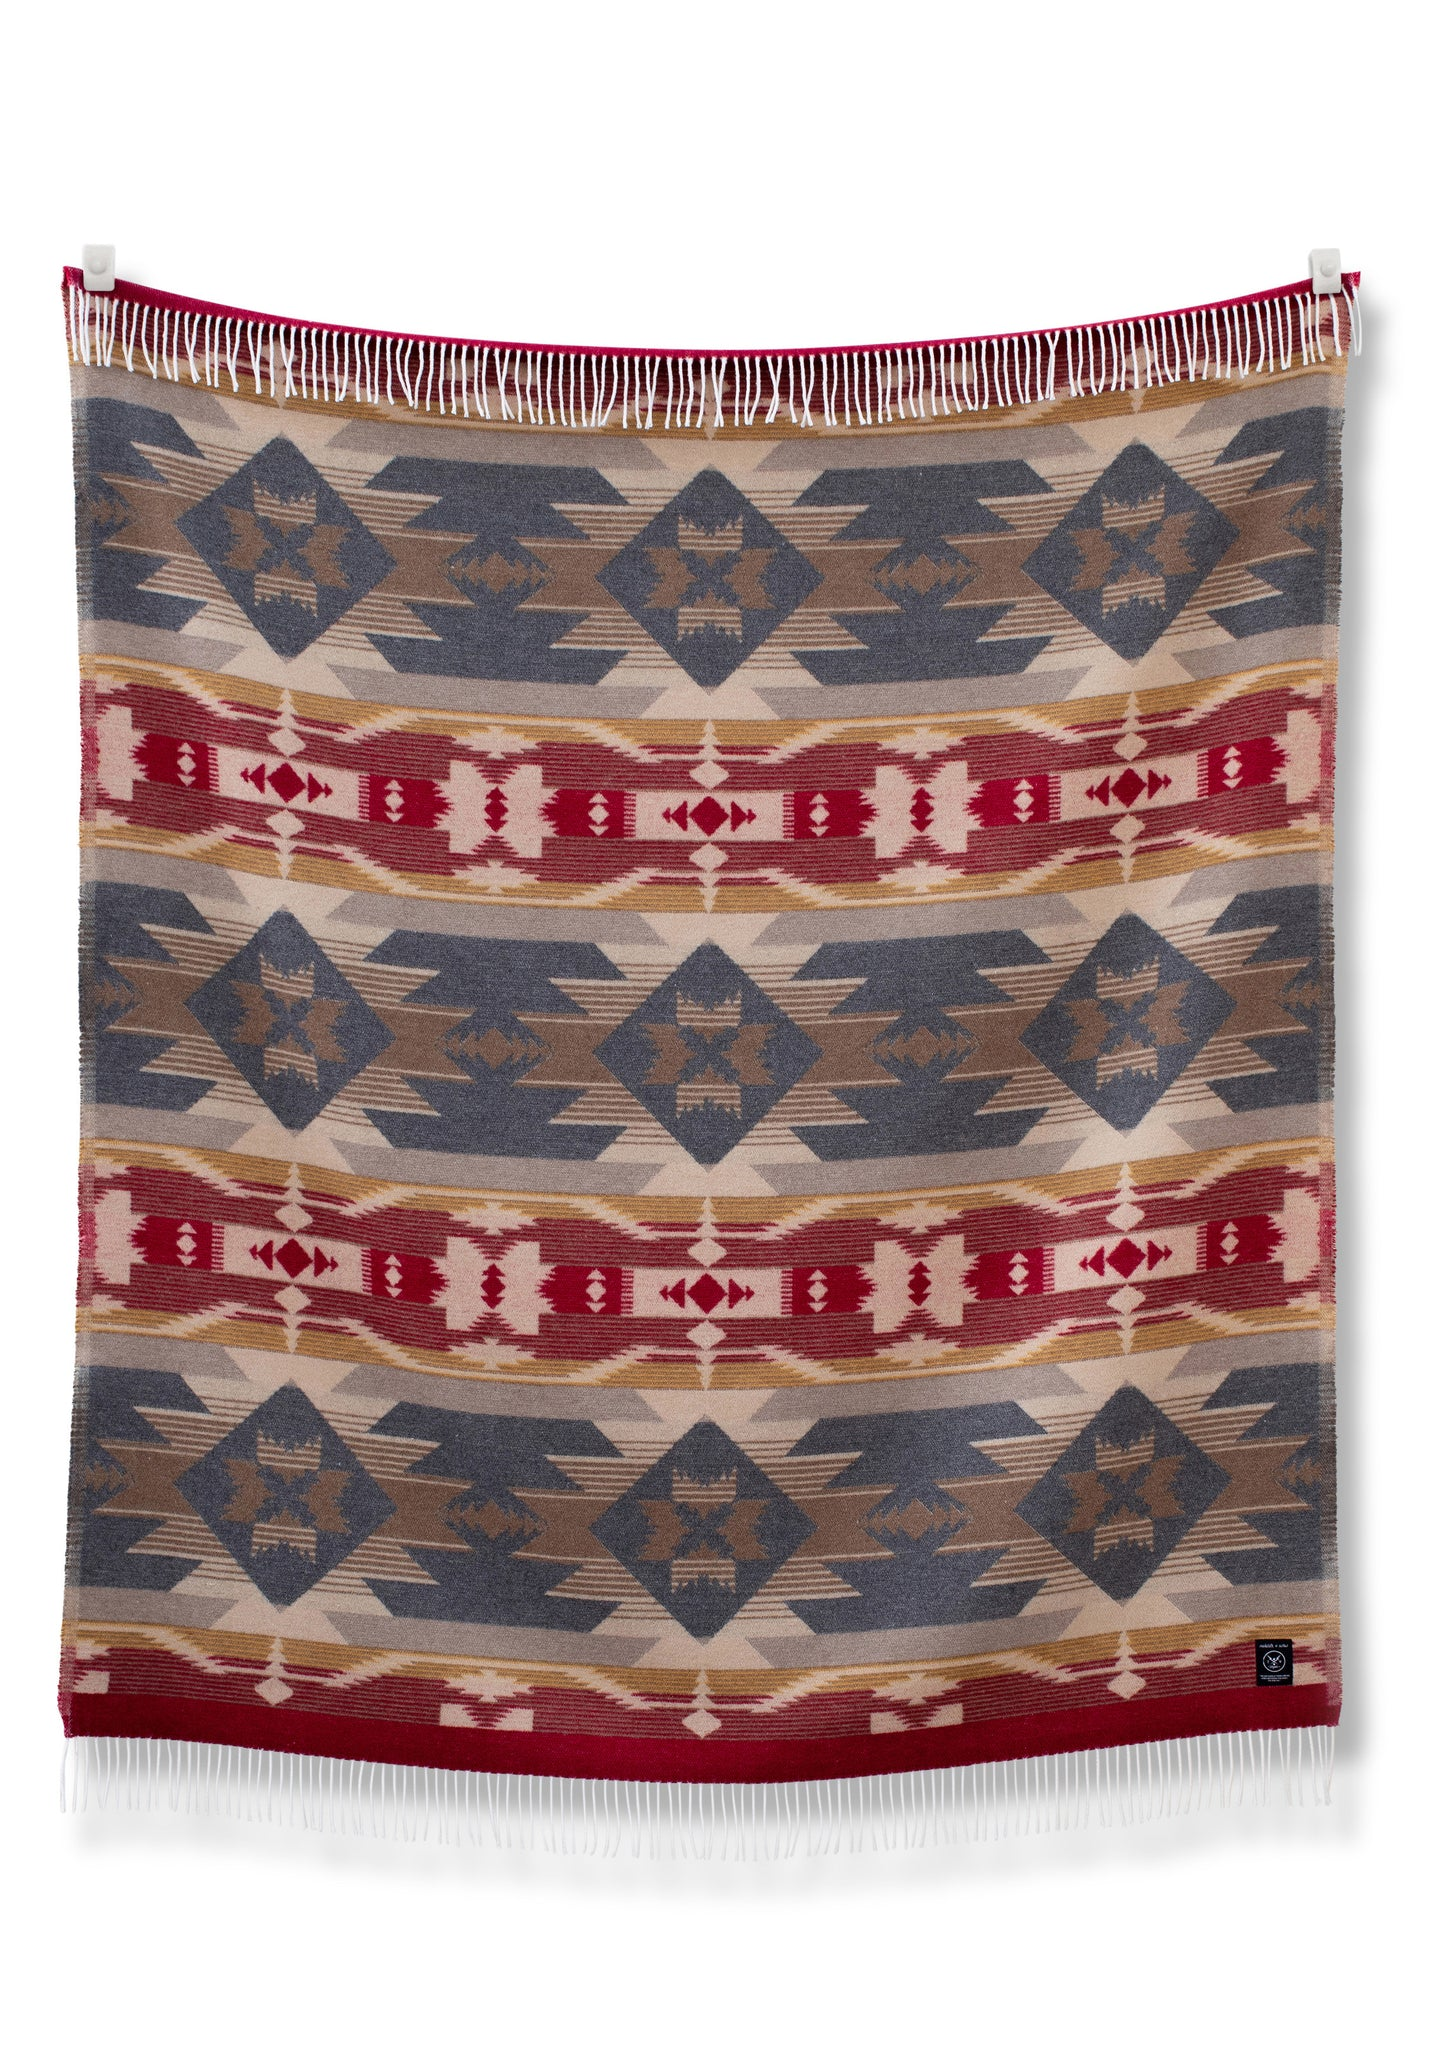 Sakcloth And Ashes Blanket